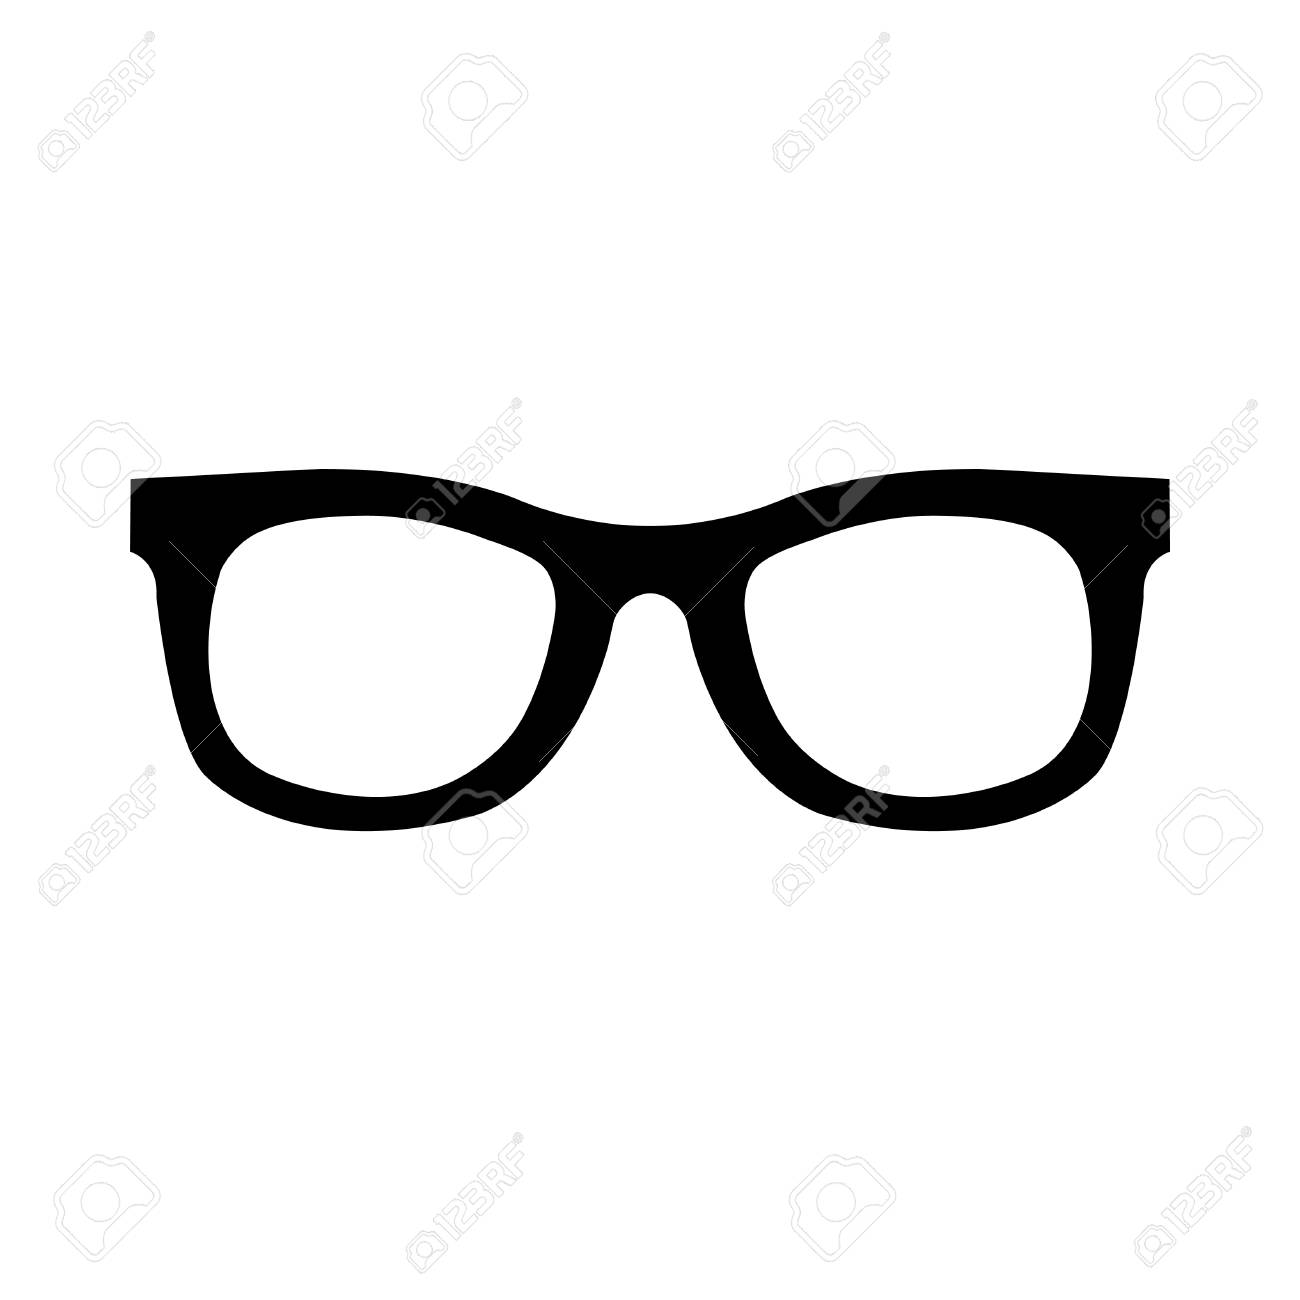 glasses vector icon royalty free cliparts vectors and stock rh 123rf com glasses vector free download glasses vector image